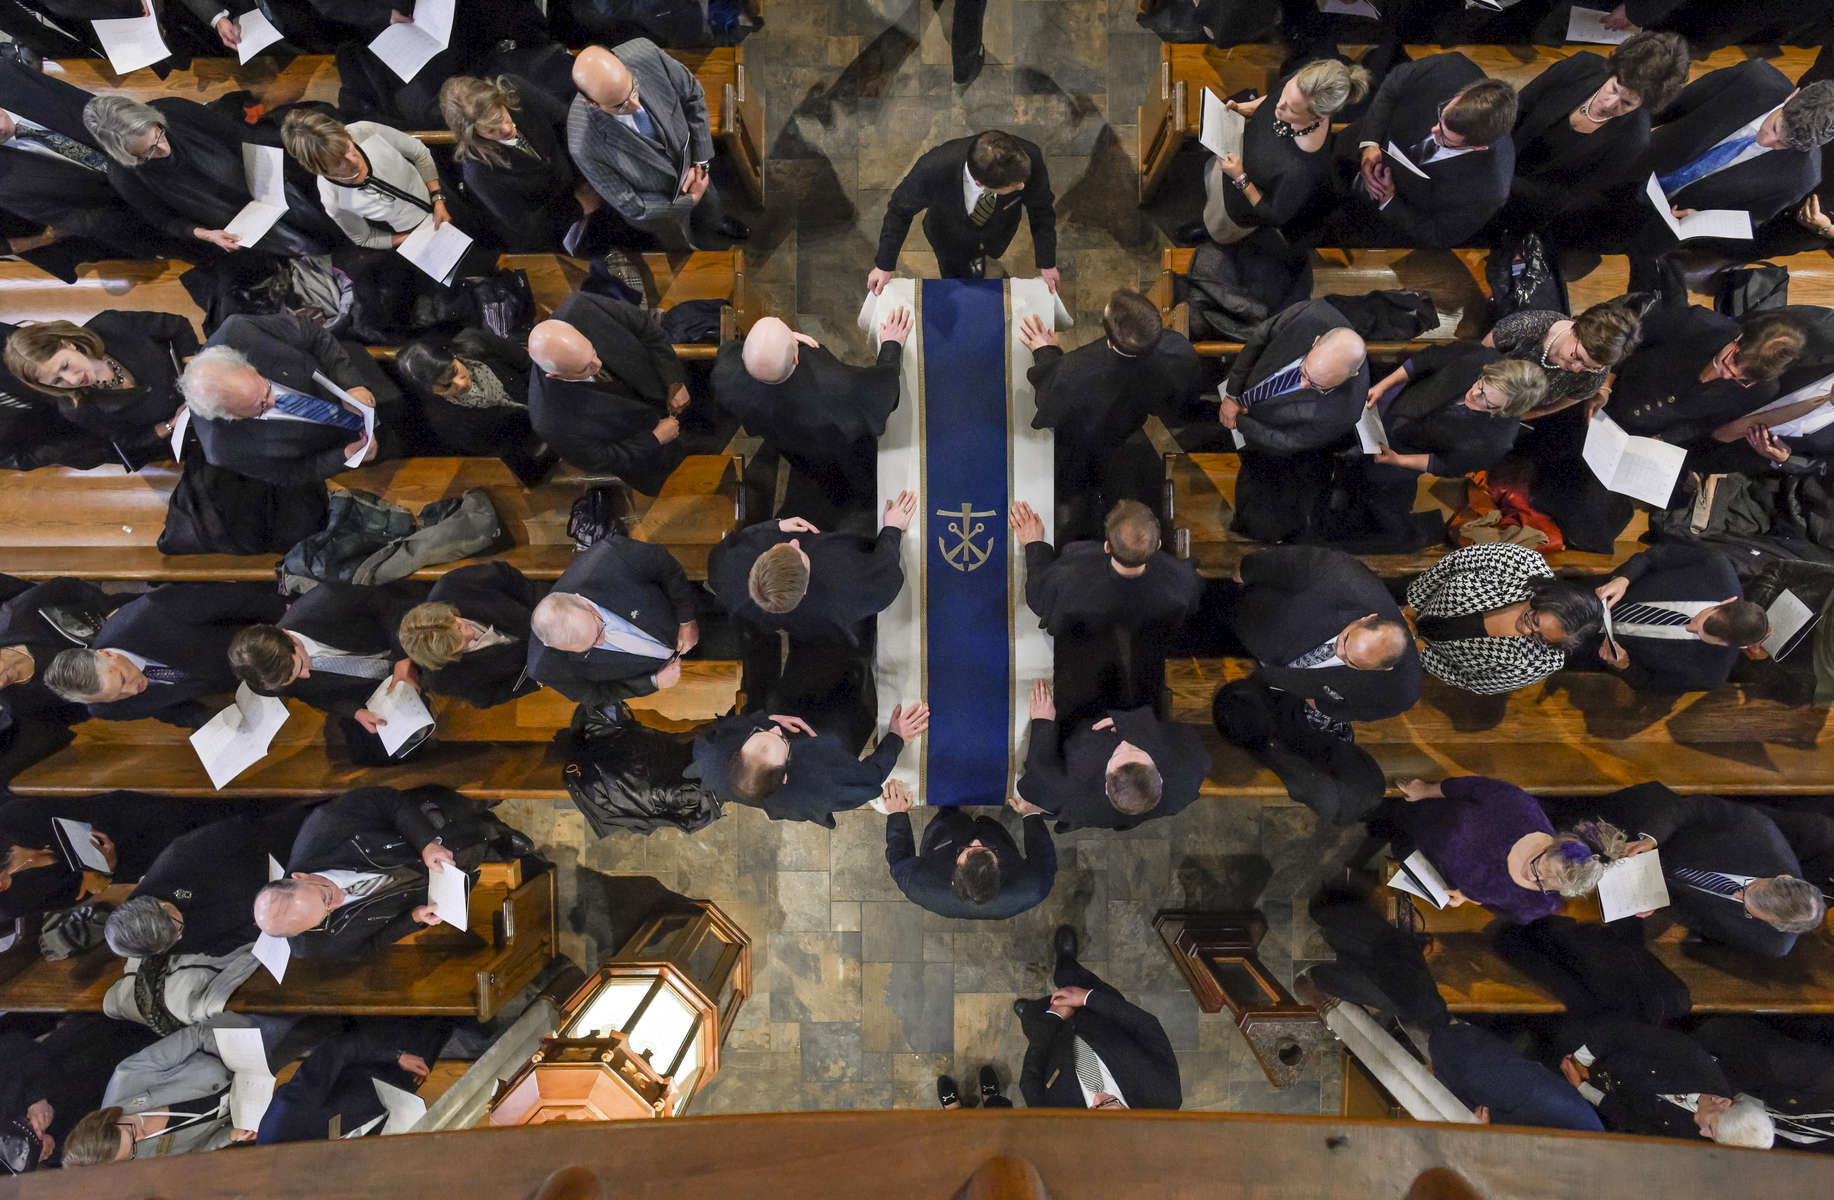 The casket of President Emeritus Rev. Theodore M. Hesburgh, C.S.C. is moved toward the front of the Basilica of the Sacred Heart at the beginning of the funeral Mass.